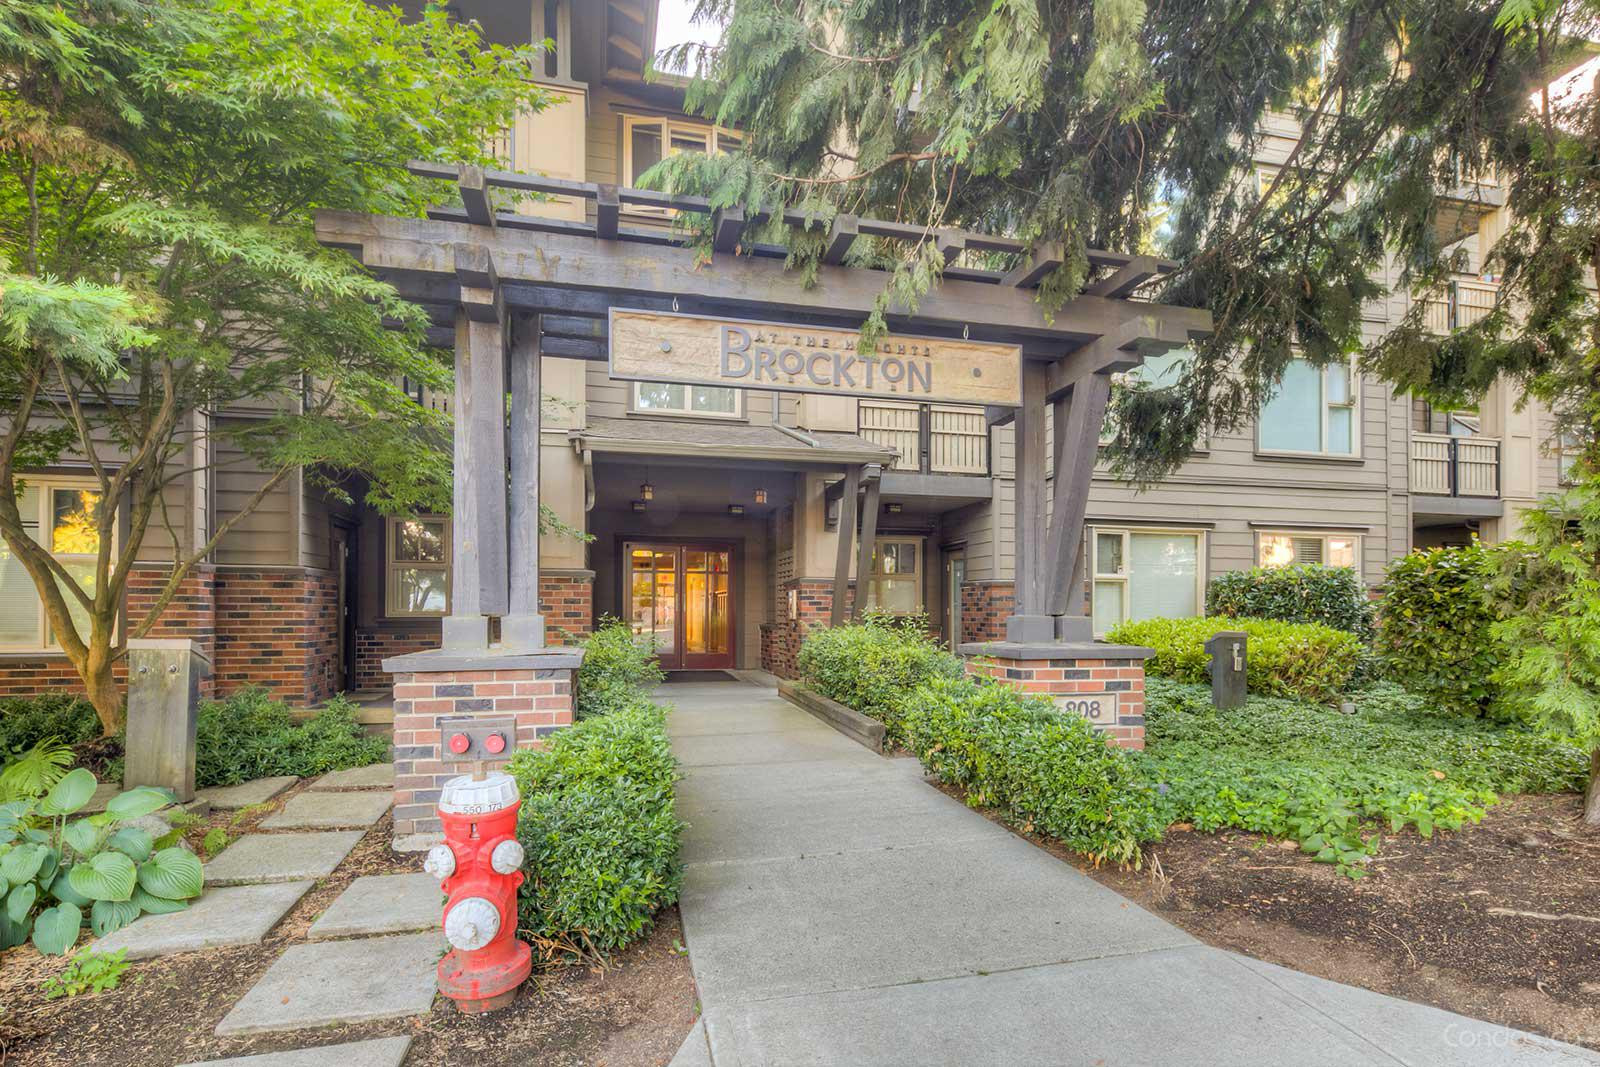 The Brockton at 808 Sangster Pl, New Westminster 1